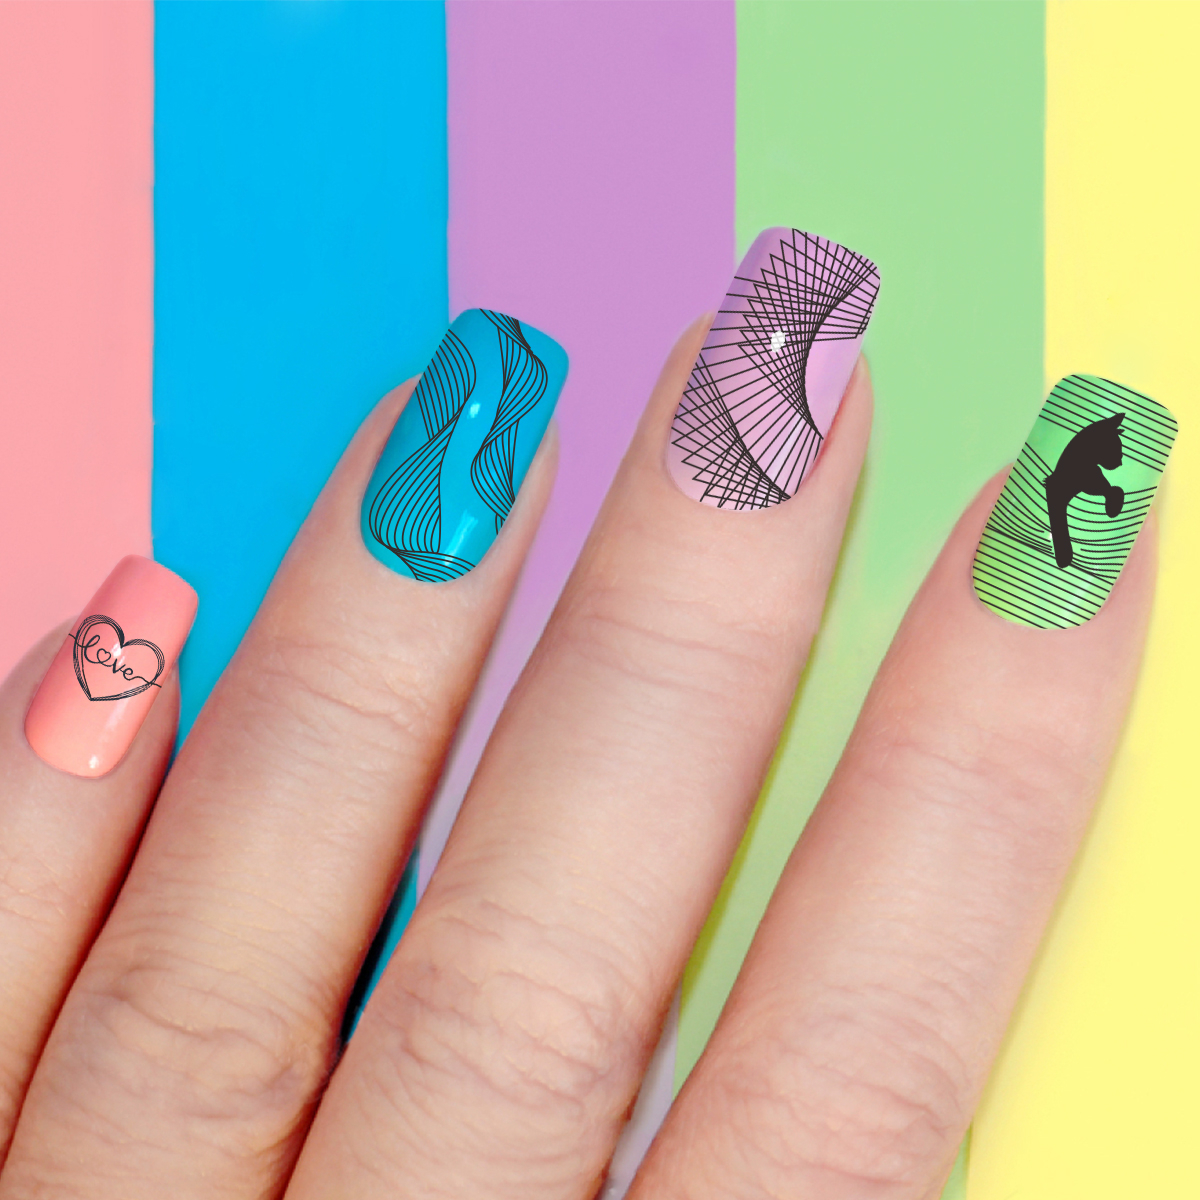 Image 4 - Beautybigbang Stamping Plates Nail Art Accessories Striped Lines Wave Heart Geometry Image Nails Stamping Print Template XL 085-in Nail Art Templates from Beauty & Health